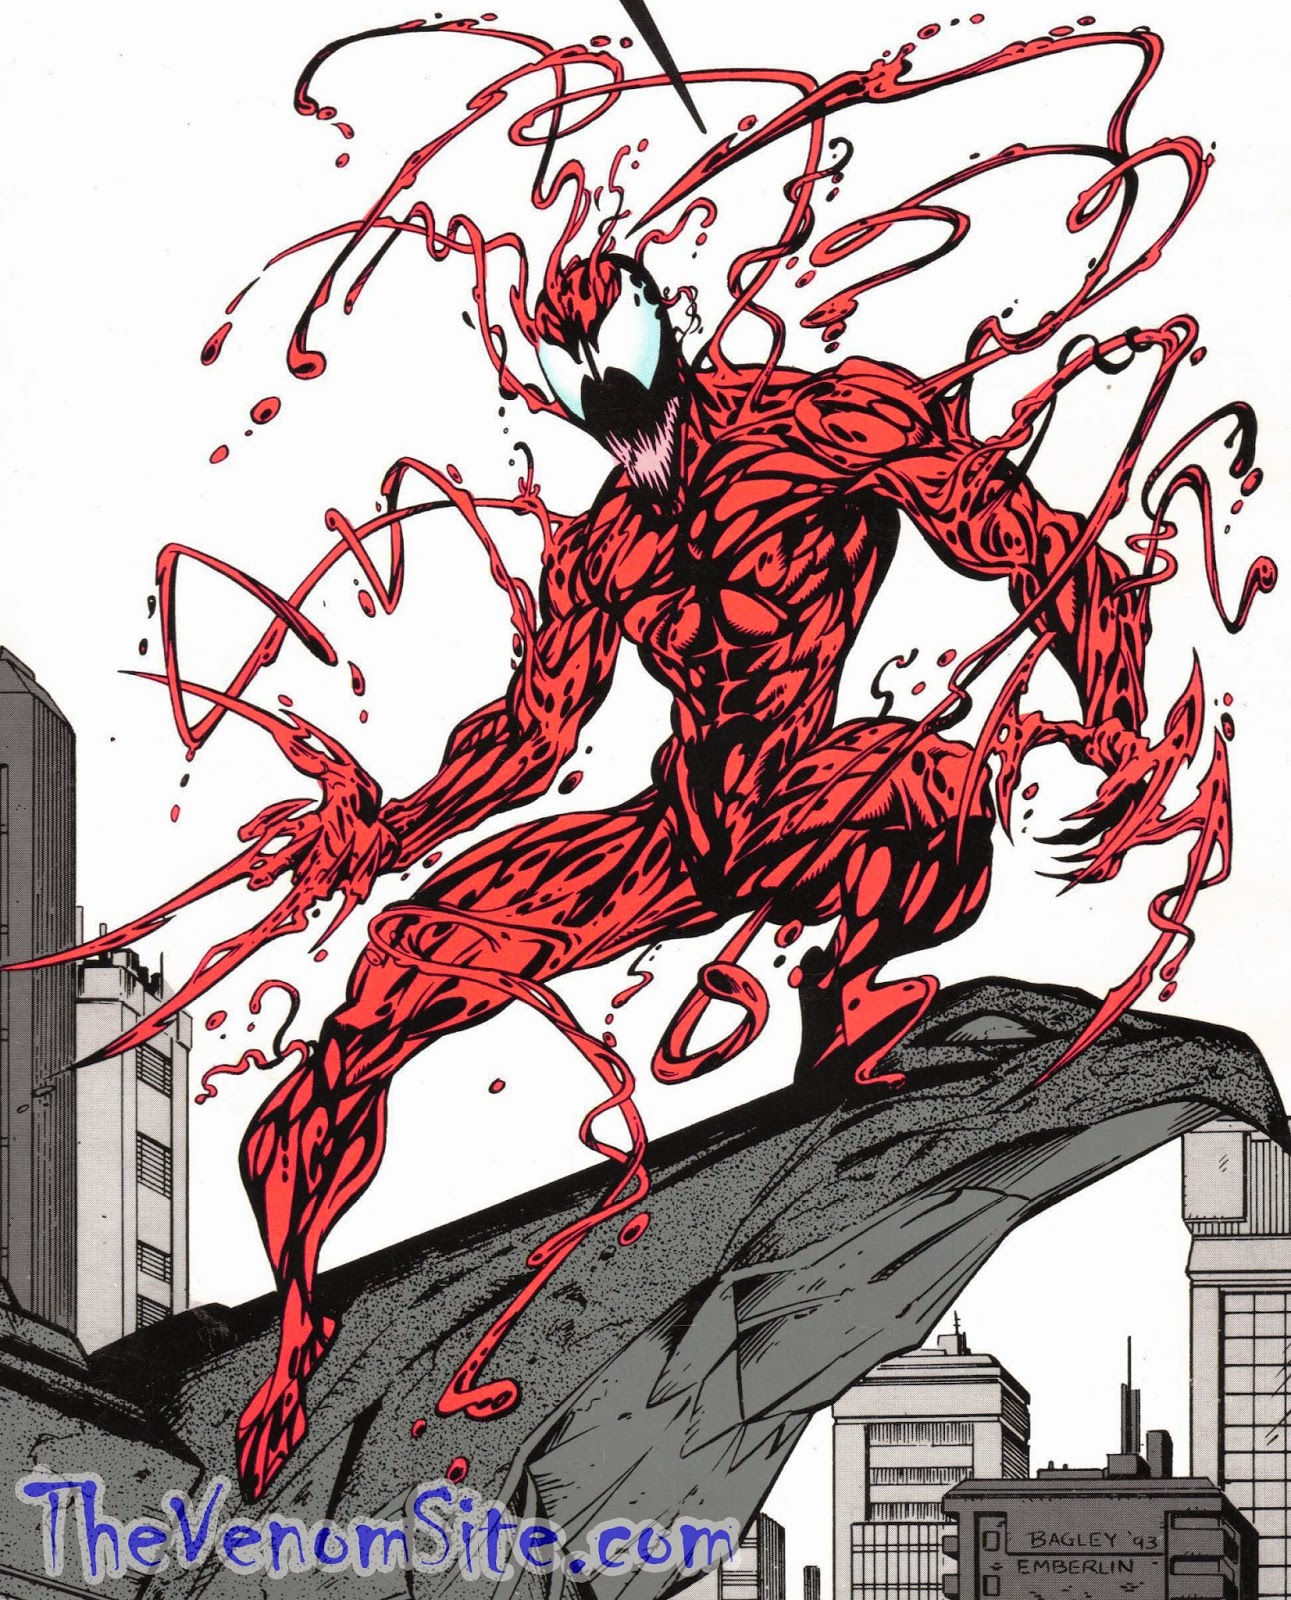 Read the best of Carnage in Spider-Man: Maximum Carnage